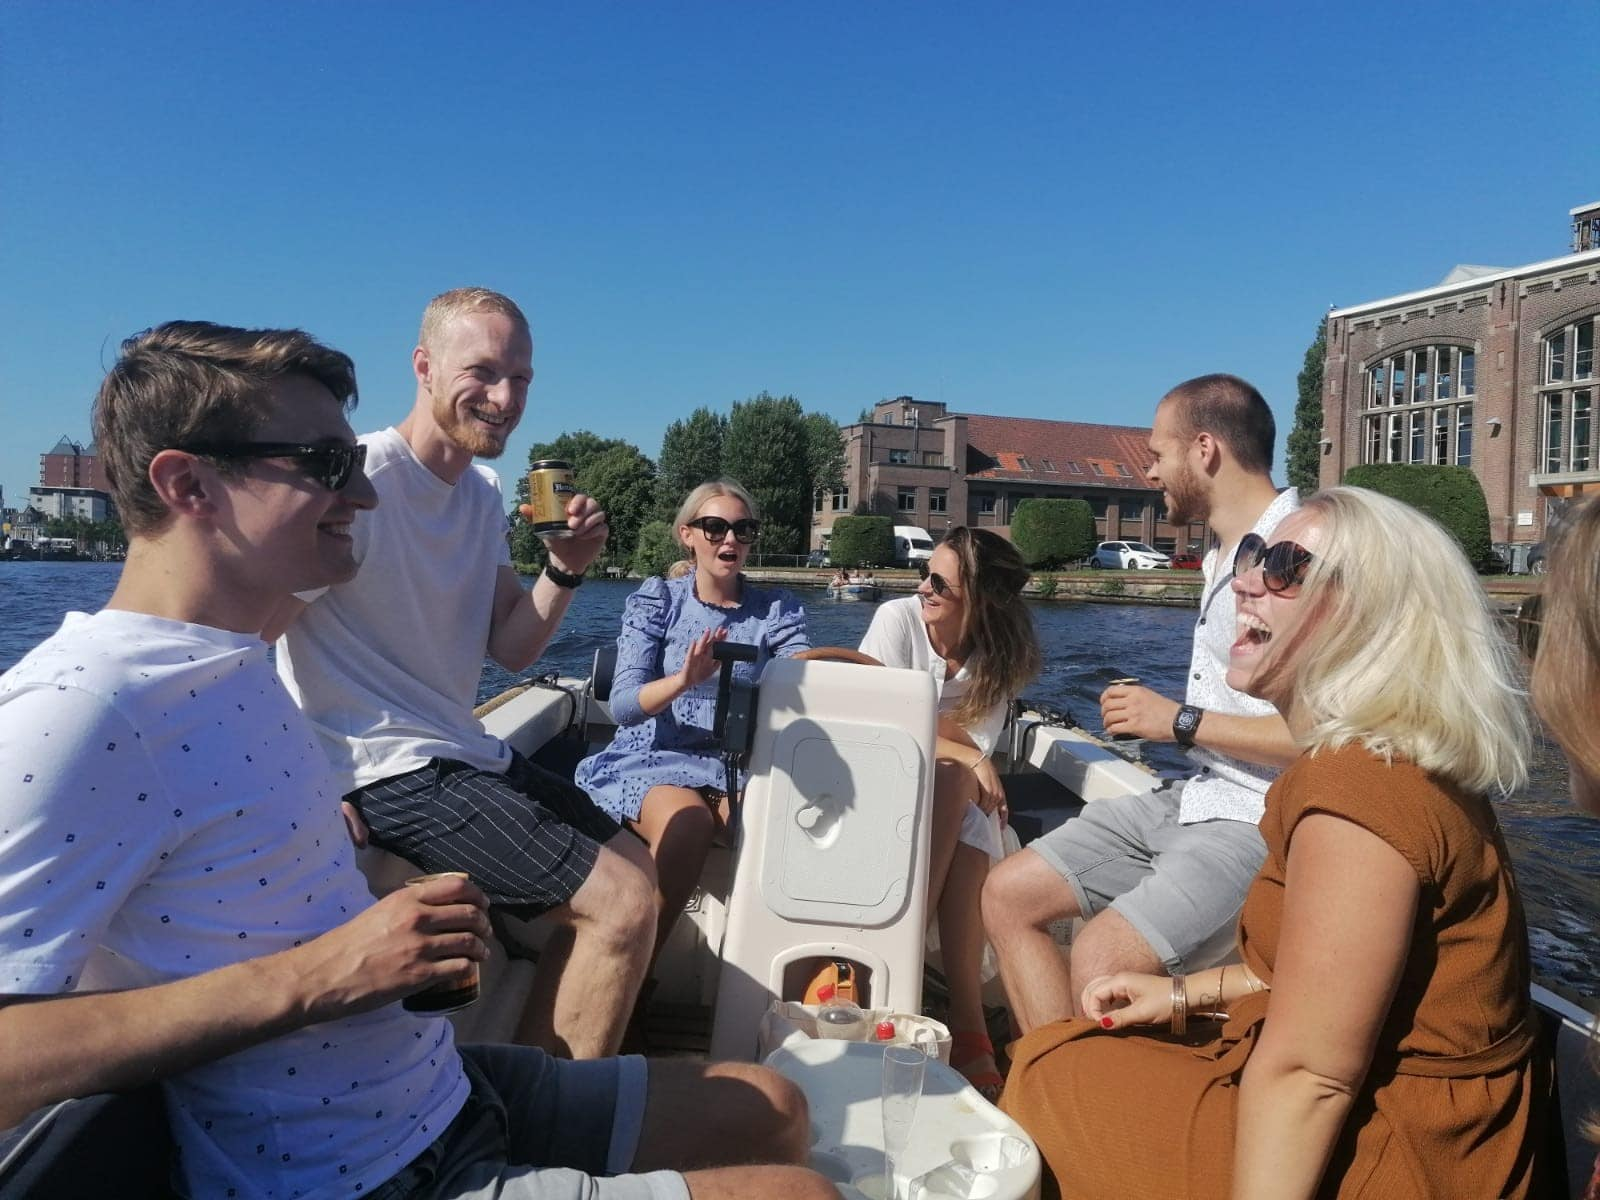 group of collegues lauging on a boat on the canal in Haarlem